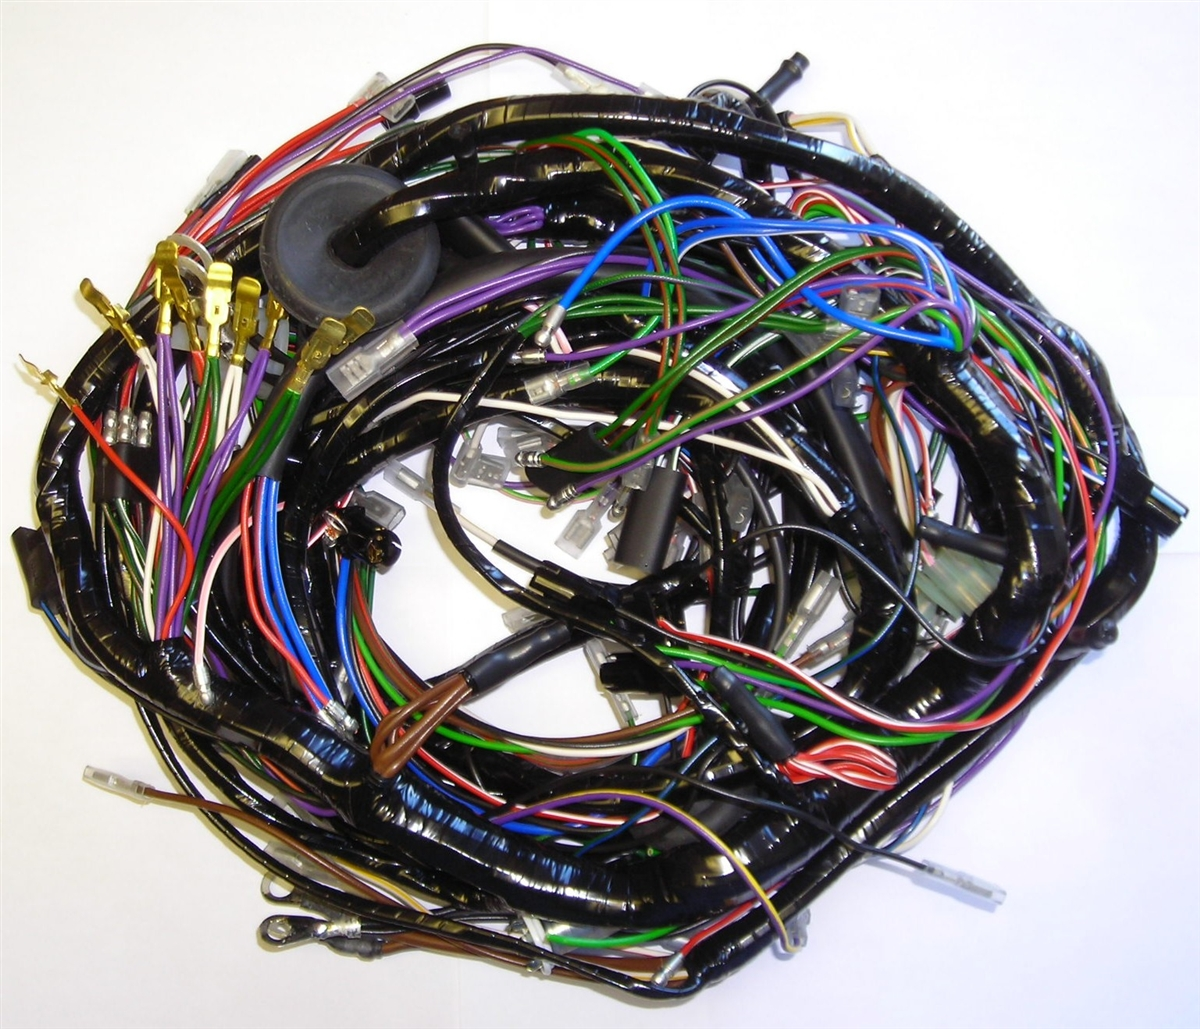 1523 2?1354101756 spitfire 1500 main wiring harness 73 triumph spitfire 1500 wiring harness at edmiracle.co